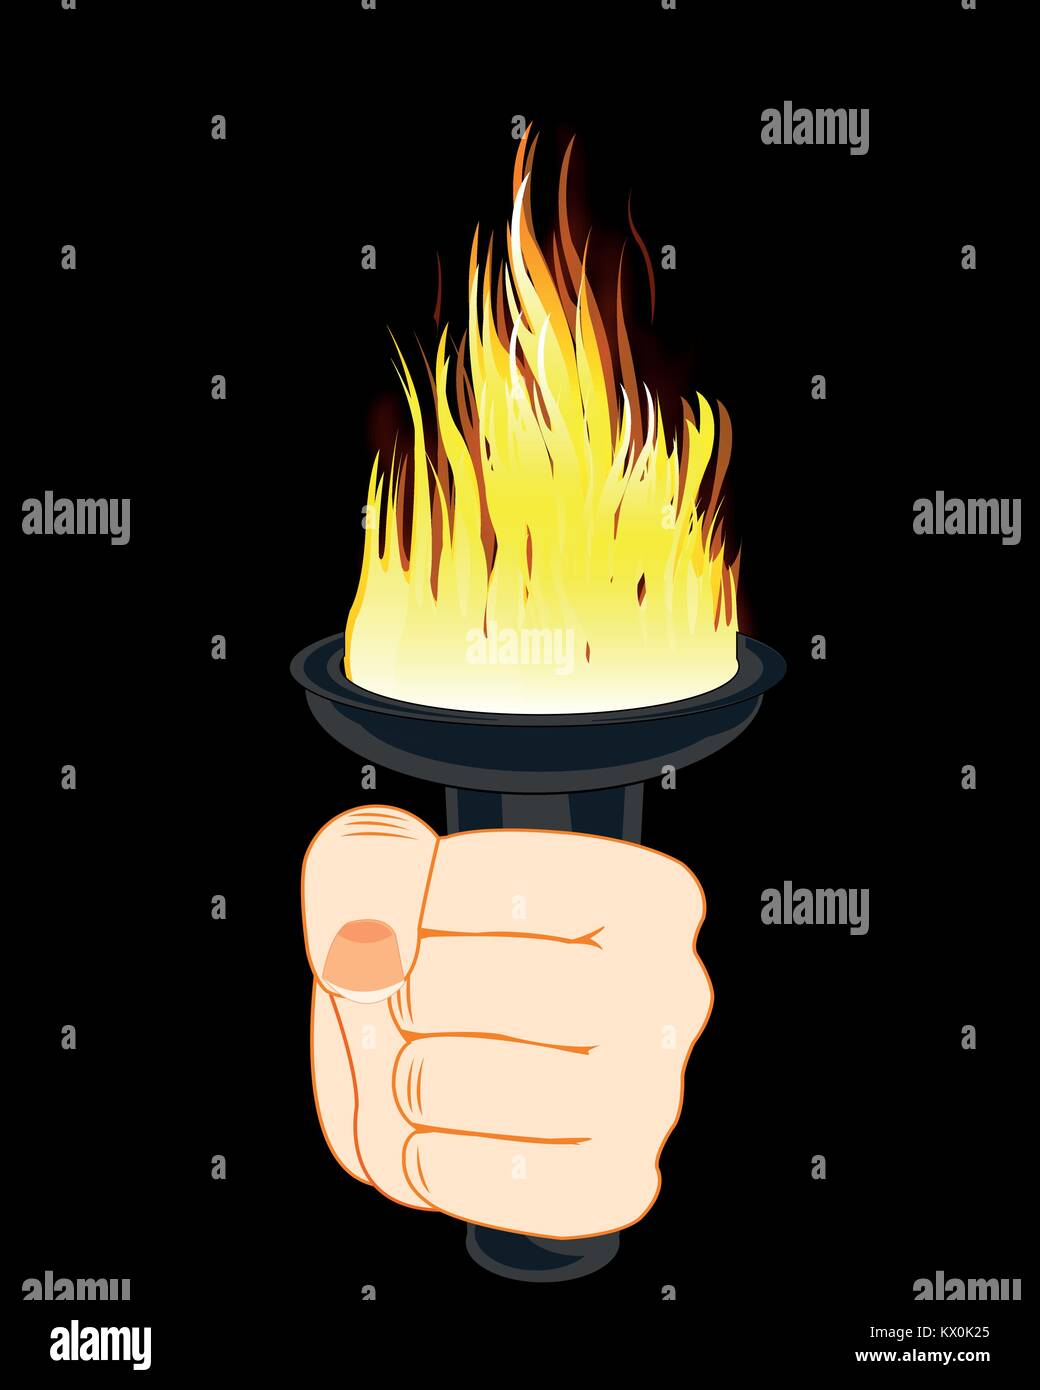 Torchlight in hand - Stock Vector